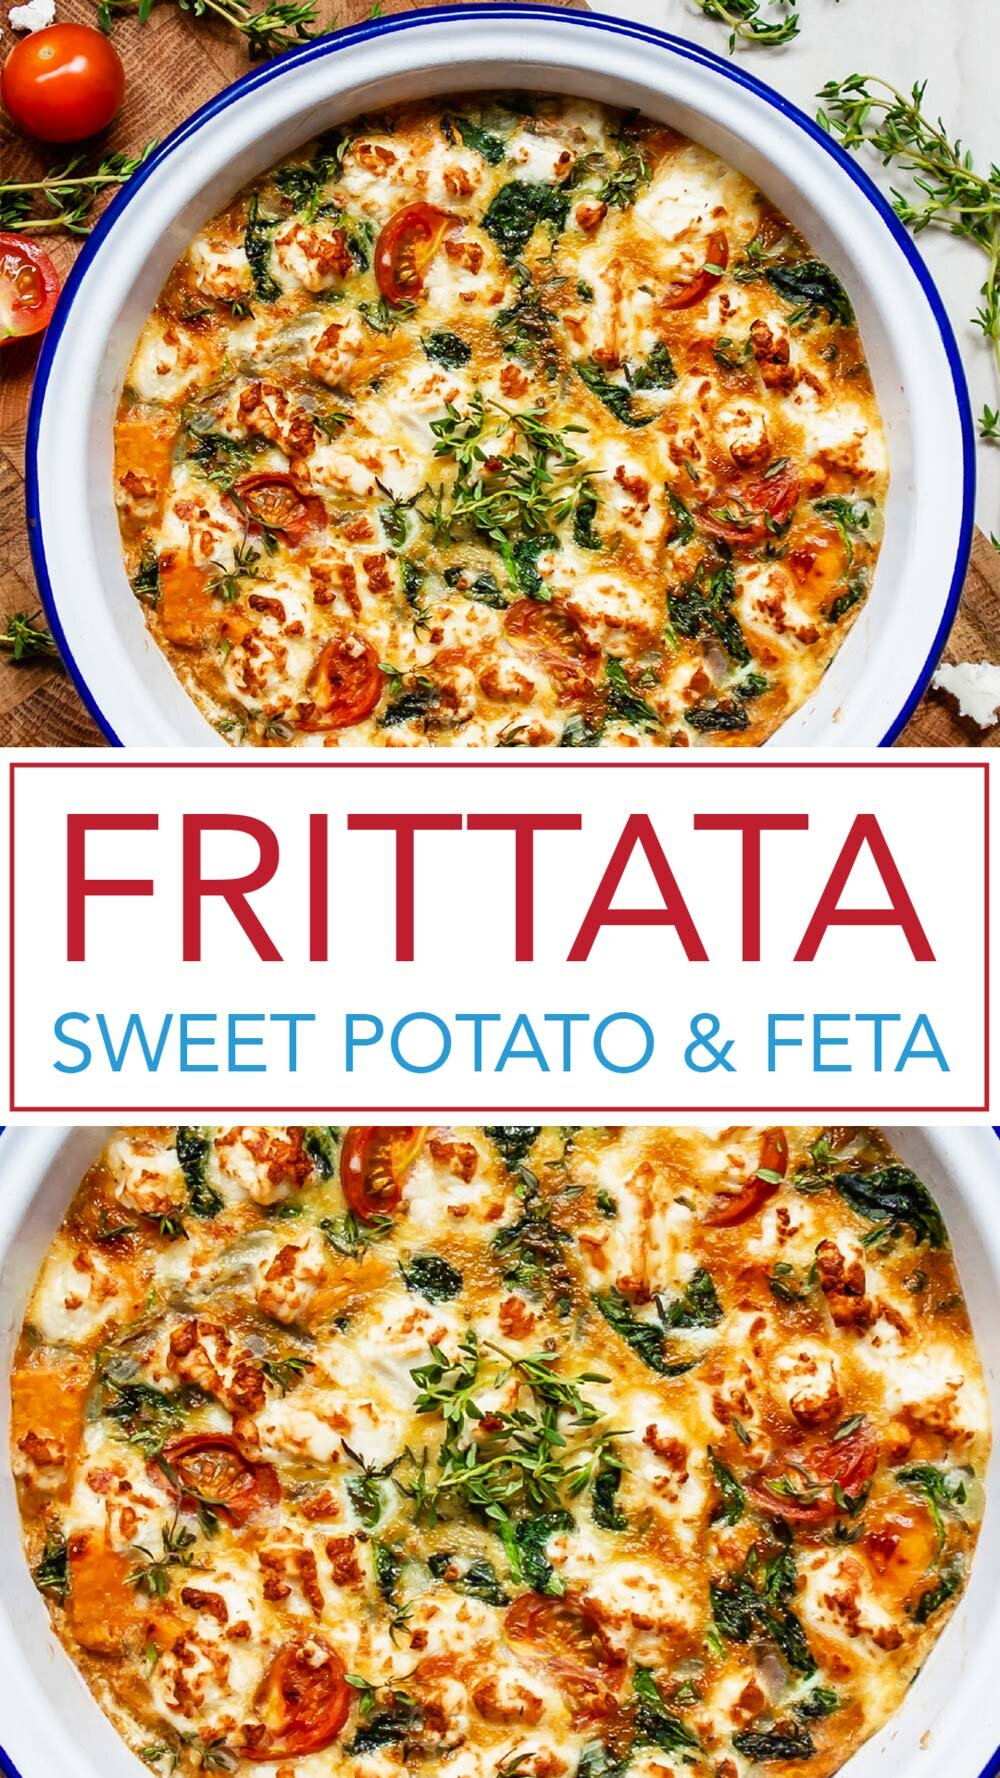 Best Frittata Recipe With Feta And Potatoes The Online Farmers Market